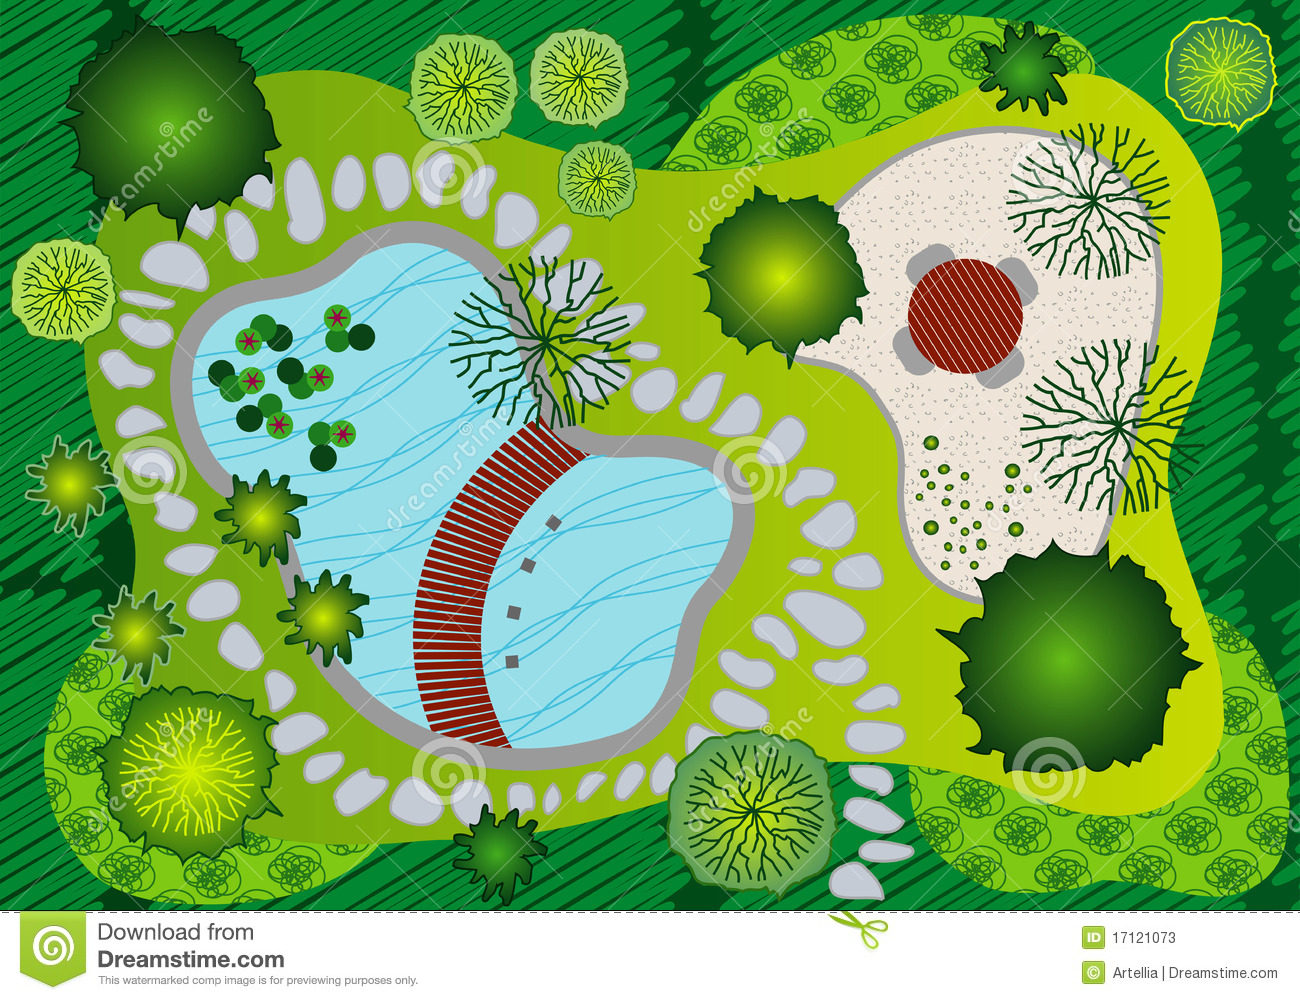 Plan landscape and garden design stock vector for Garden design graphics